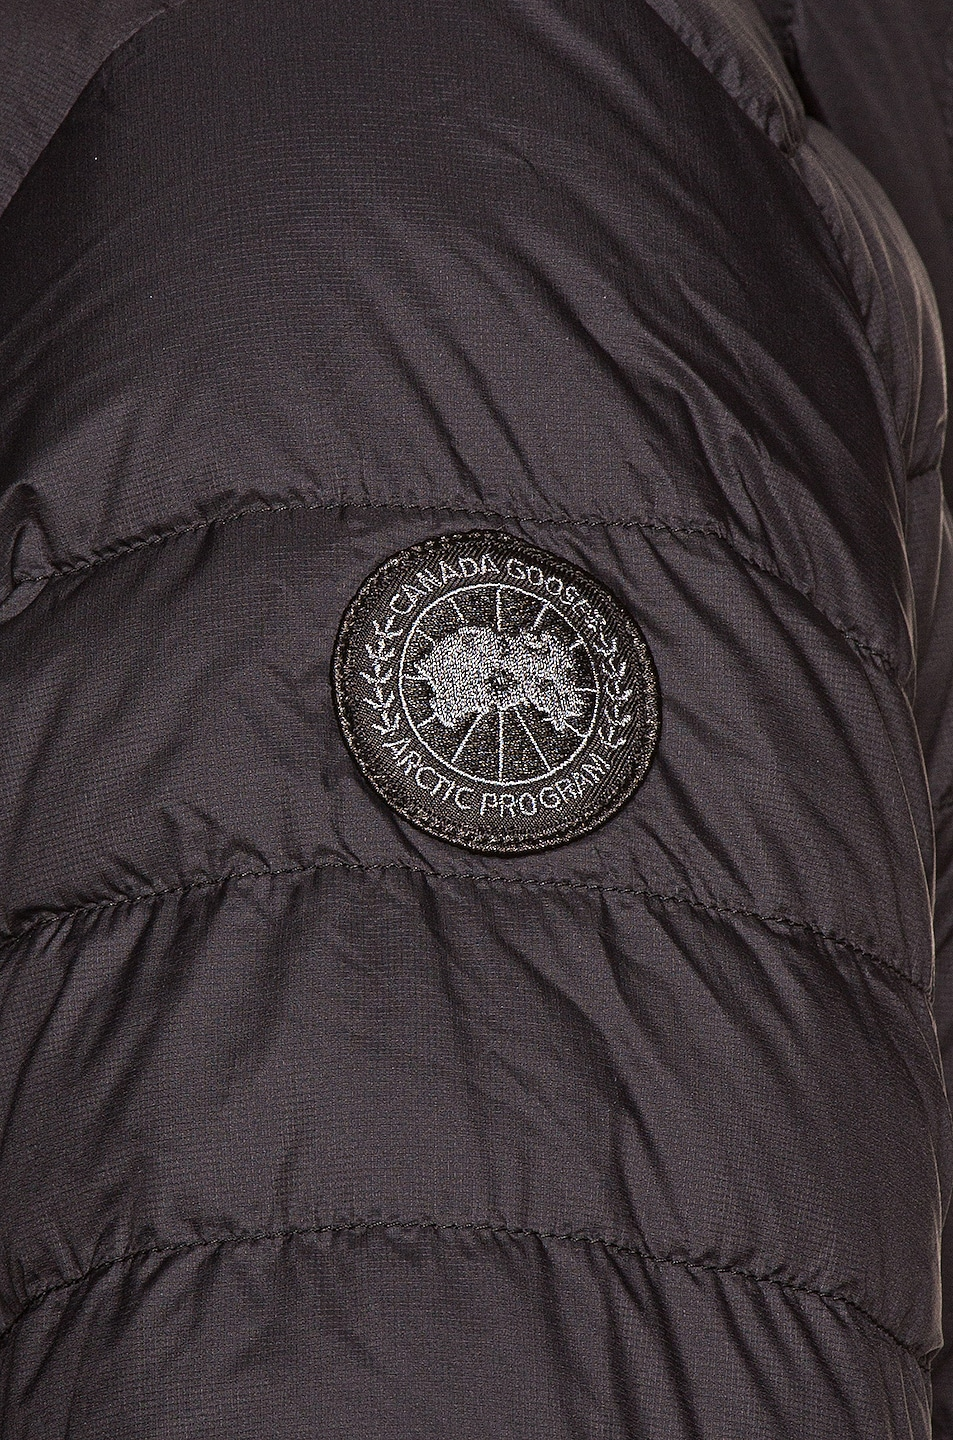 Image 7 of Canada Goose Black Label Sydney Hoody in Black